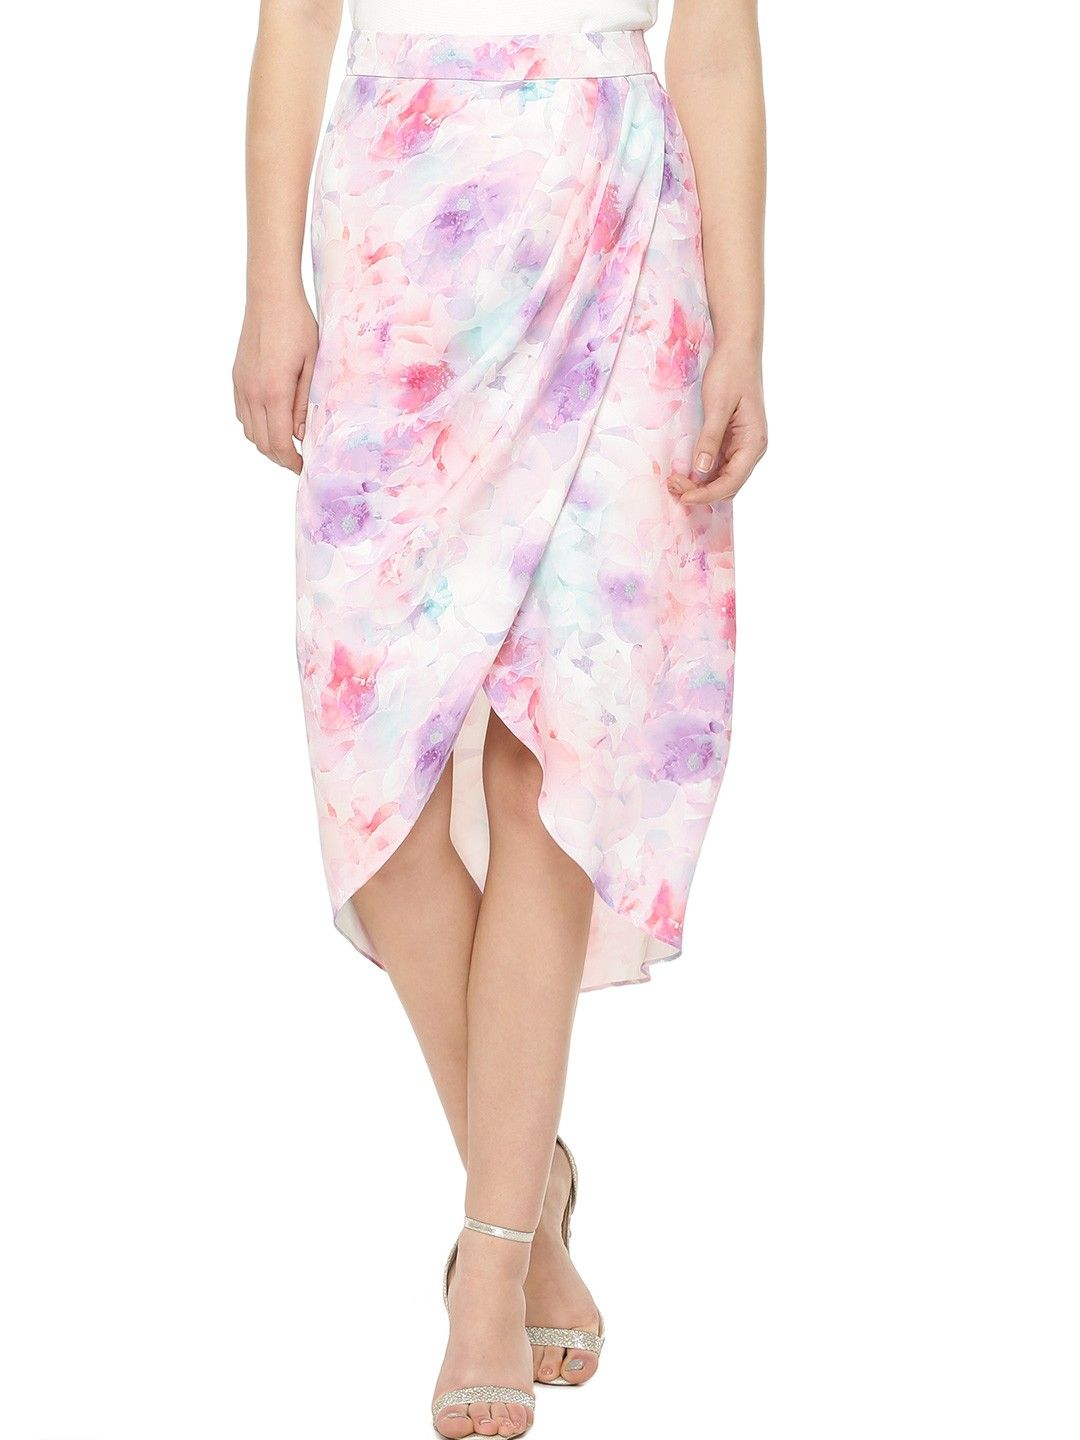 11a5dc5ee1 Buy FOREVER NEW Floral Print Asymmetric Wrap Skirt For Women - Women's  Multi Pencil Skirts Online in India